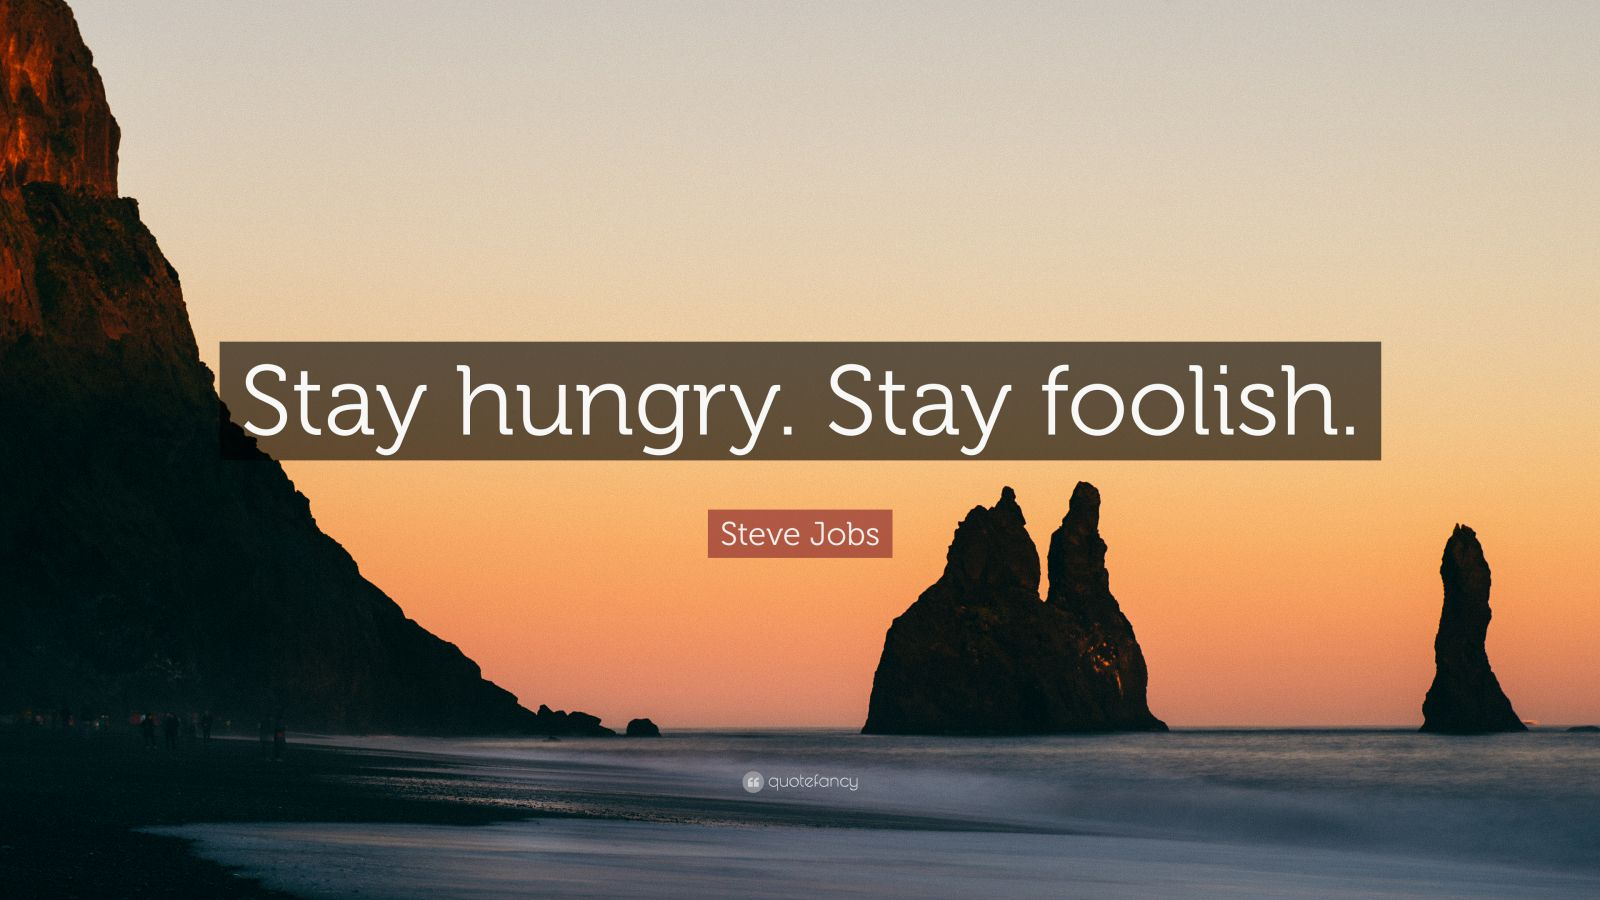 Dalai Lama Quotes Wallpapers Steve Jobs Quote Stay Hungry Stay Foolish 41